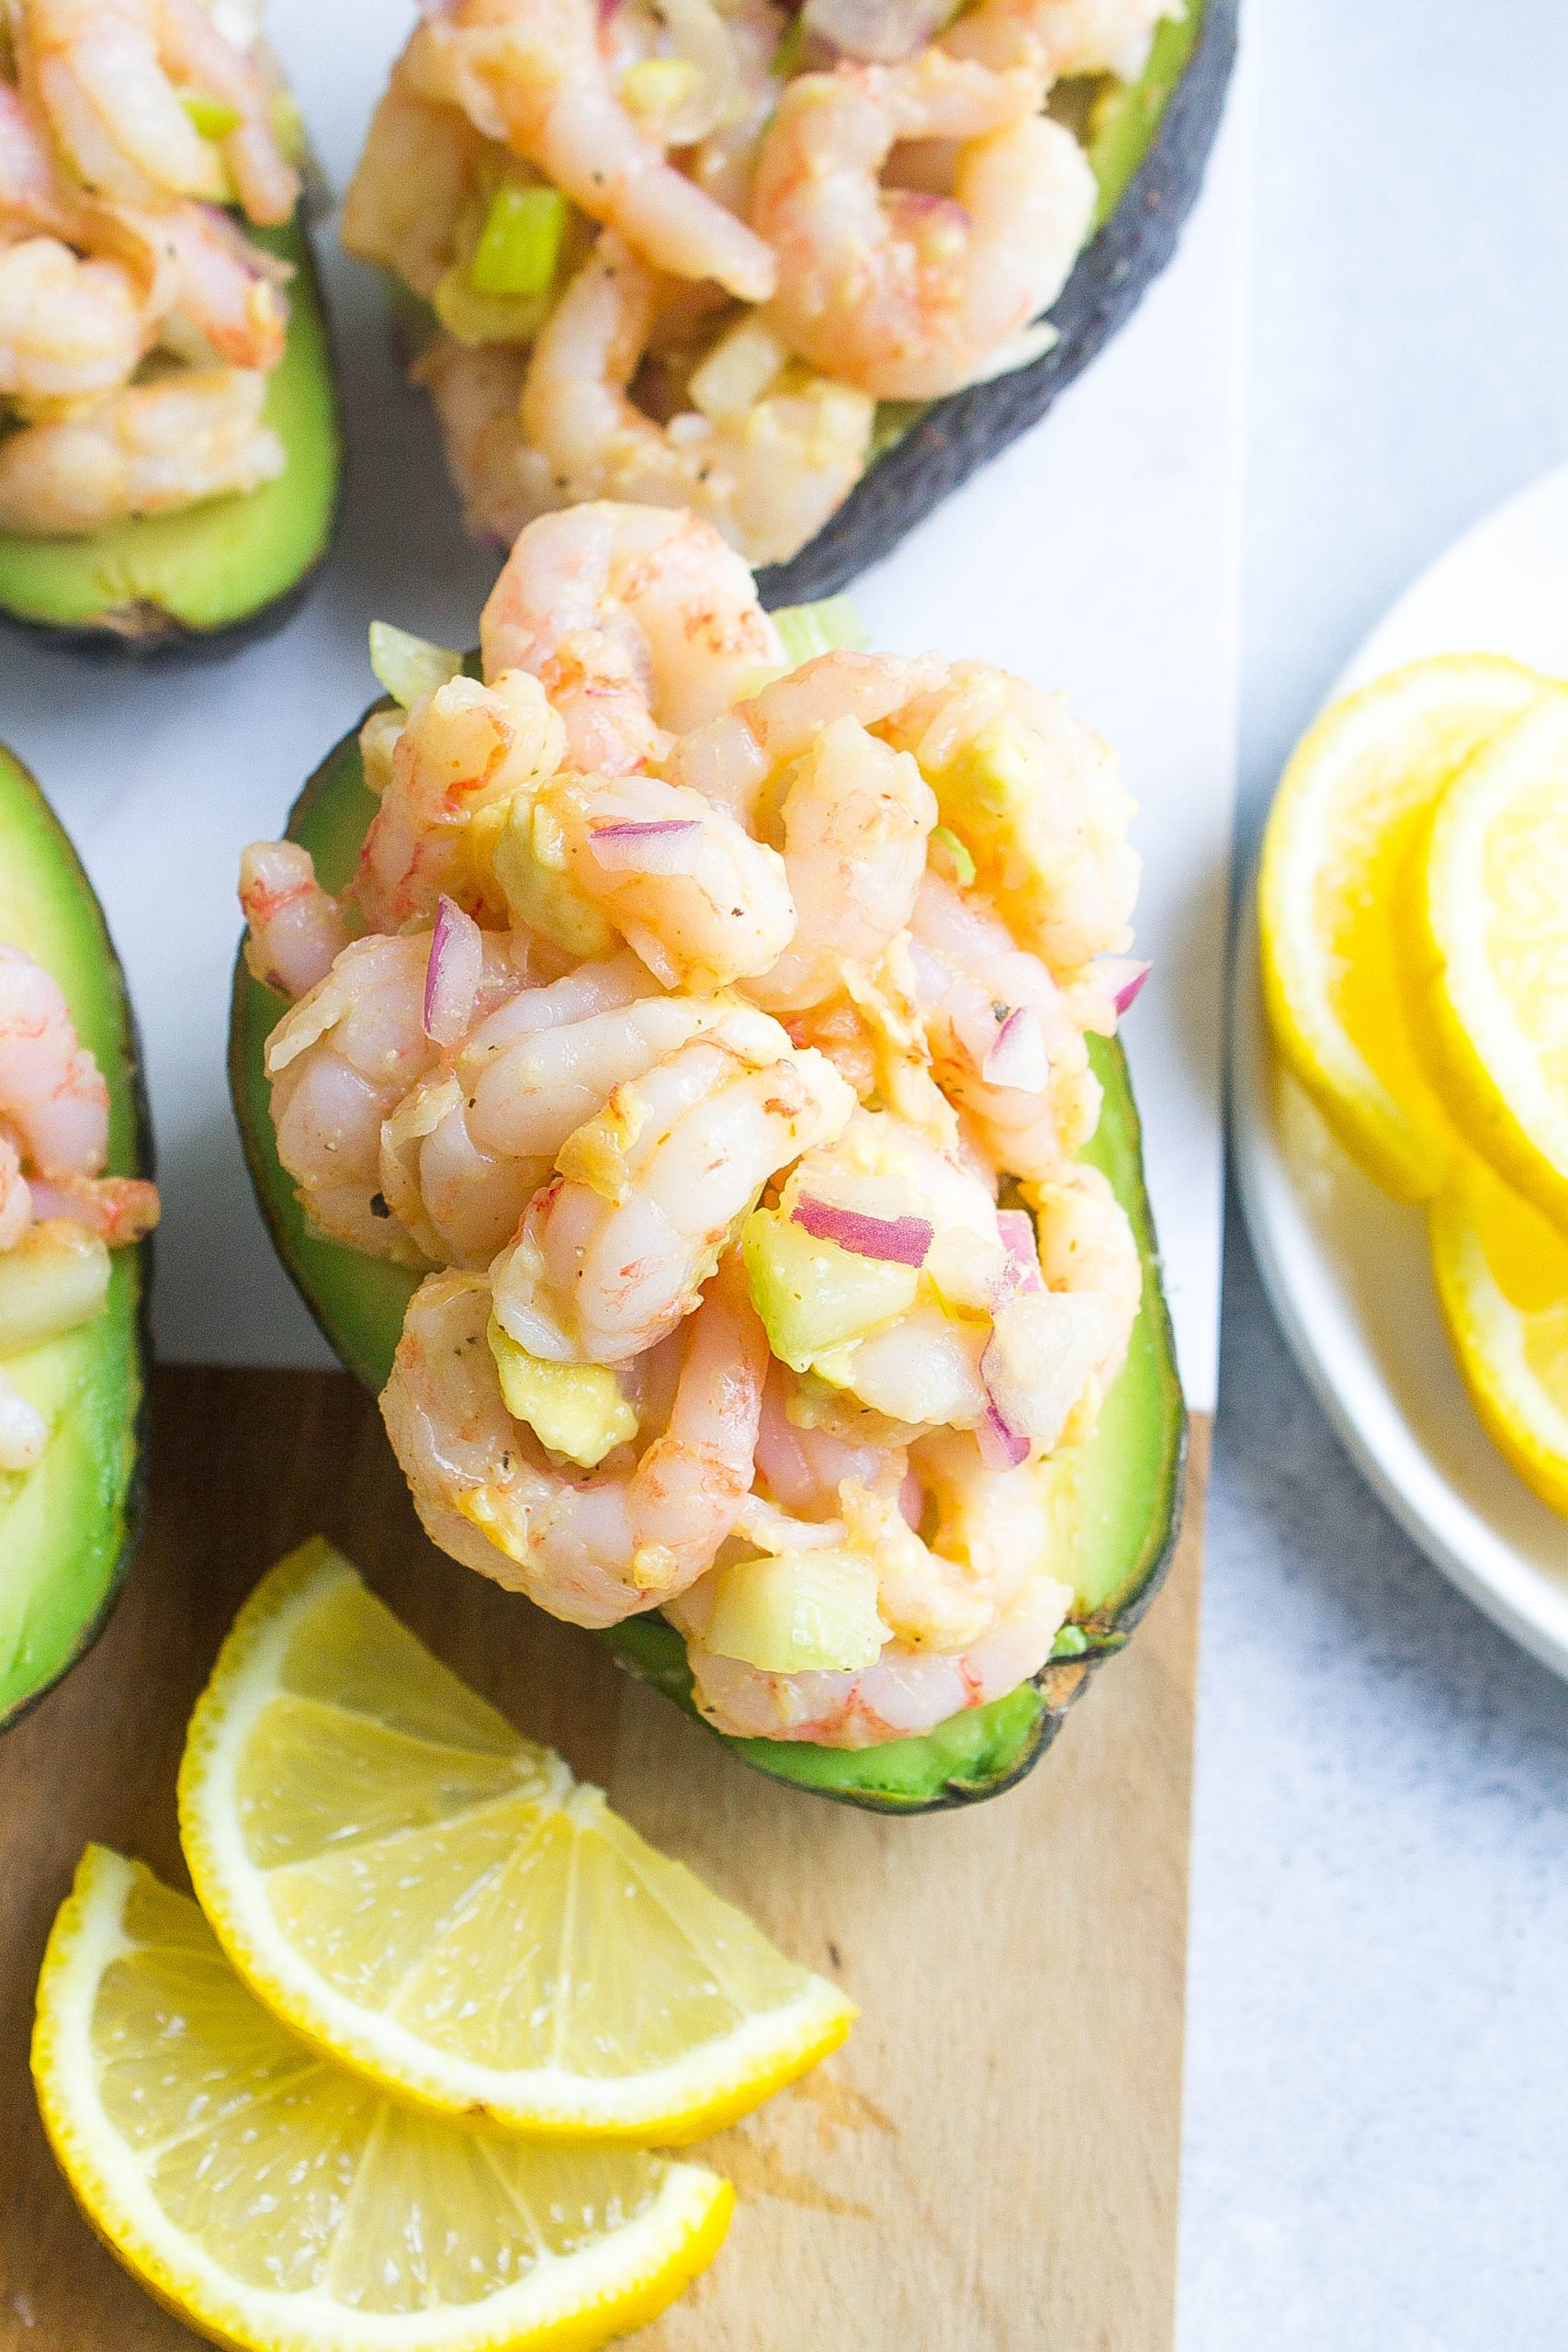 Stuffed Avocados with Shrimp